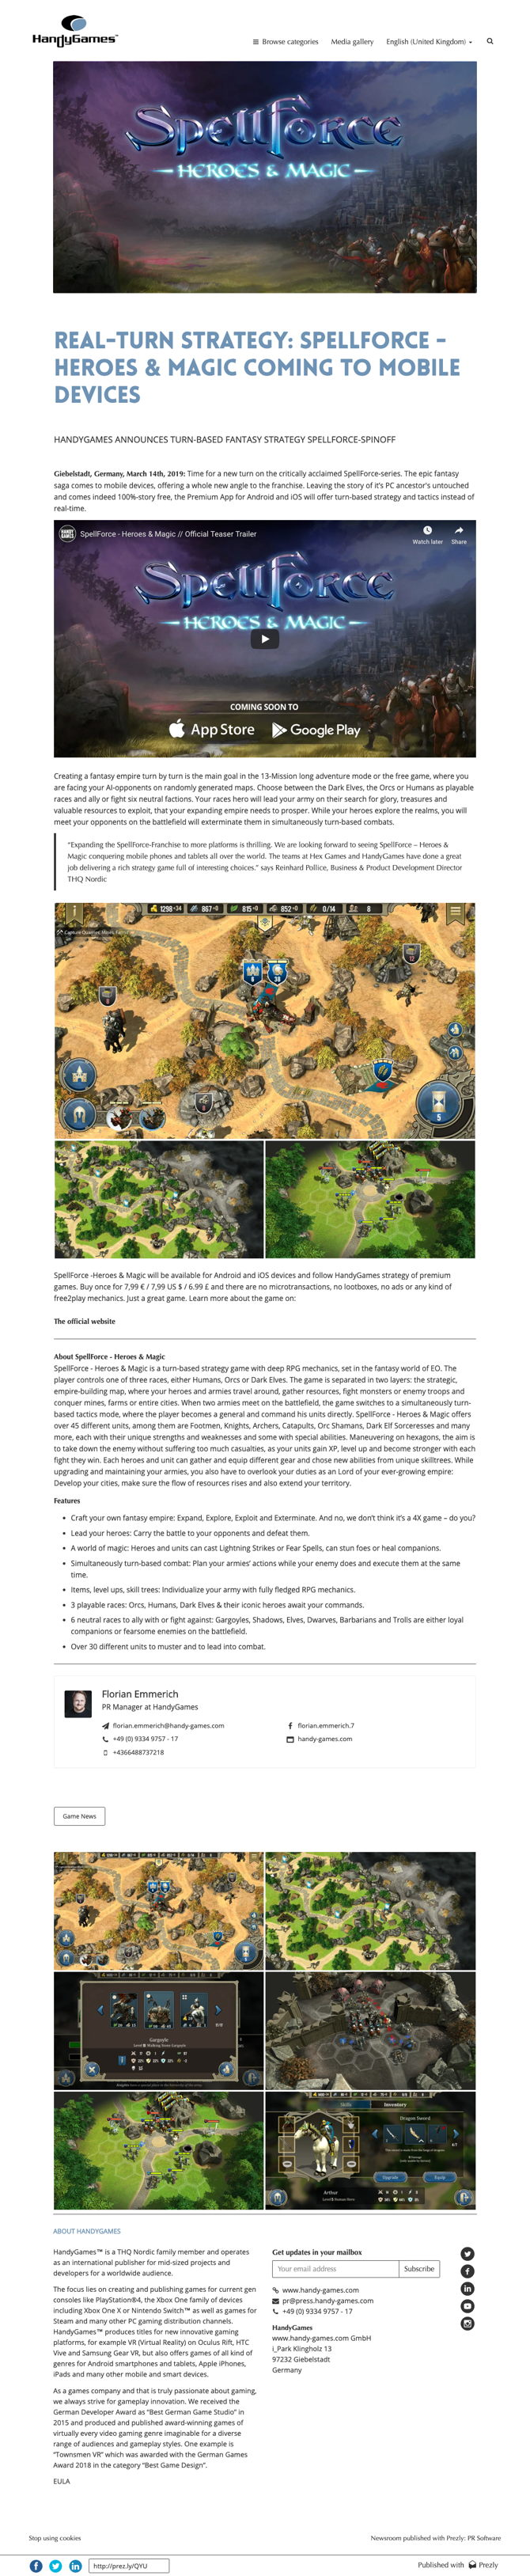 Real-turn strategy: SpellForce - Heroes & Magic coming to mobile devices